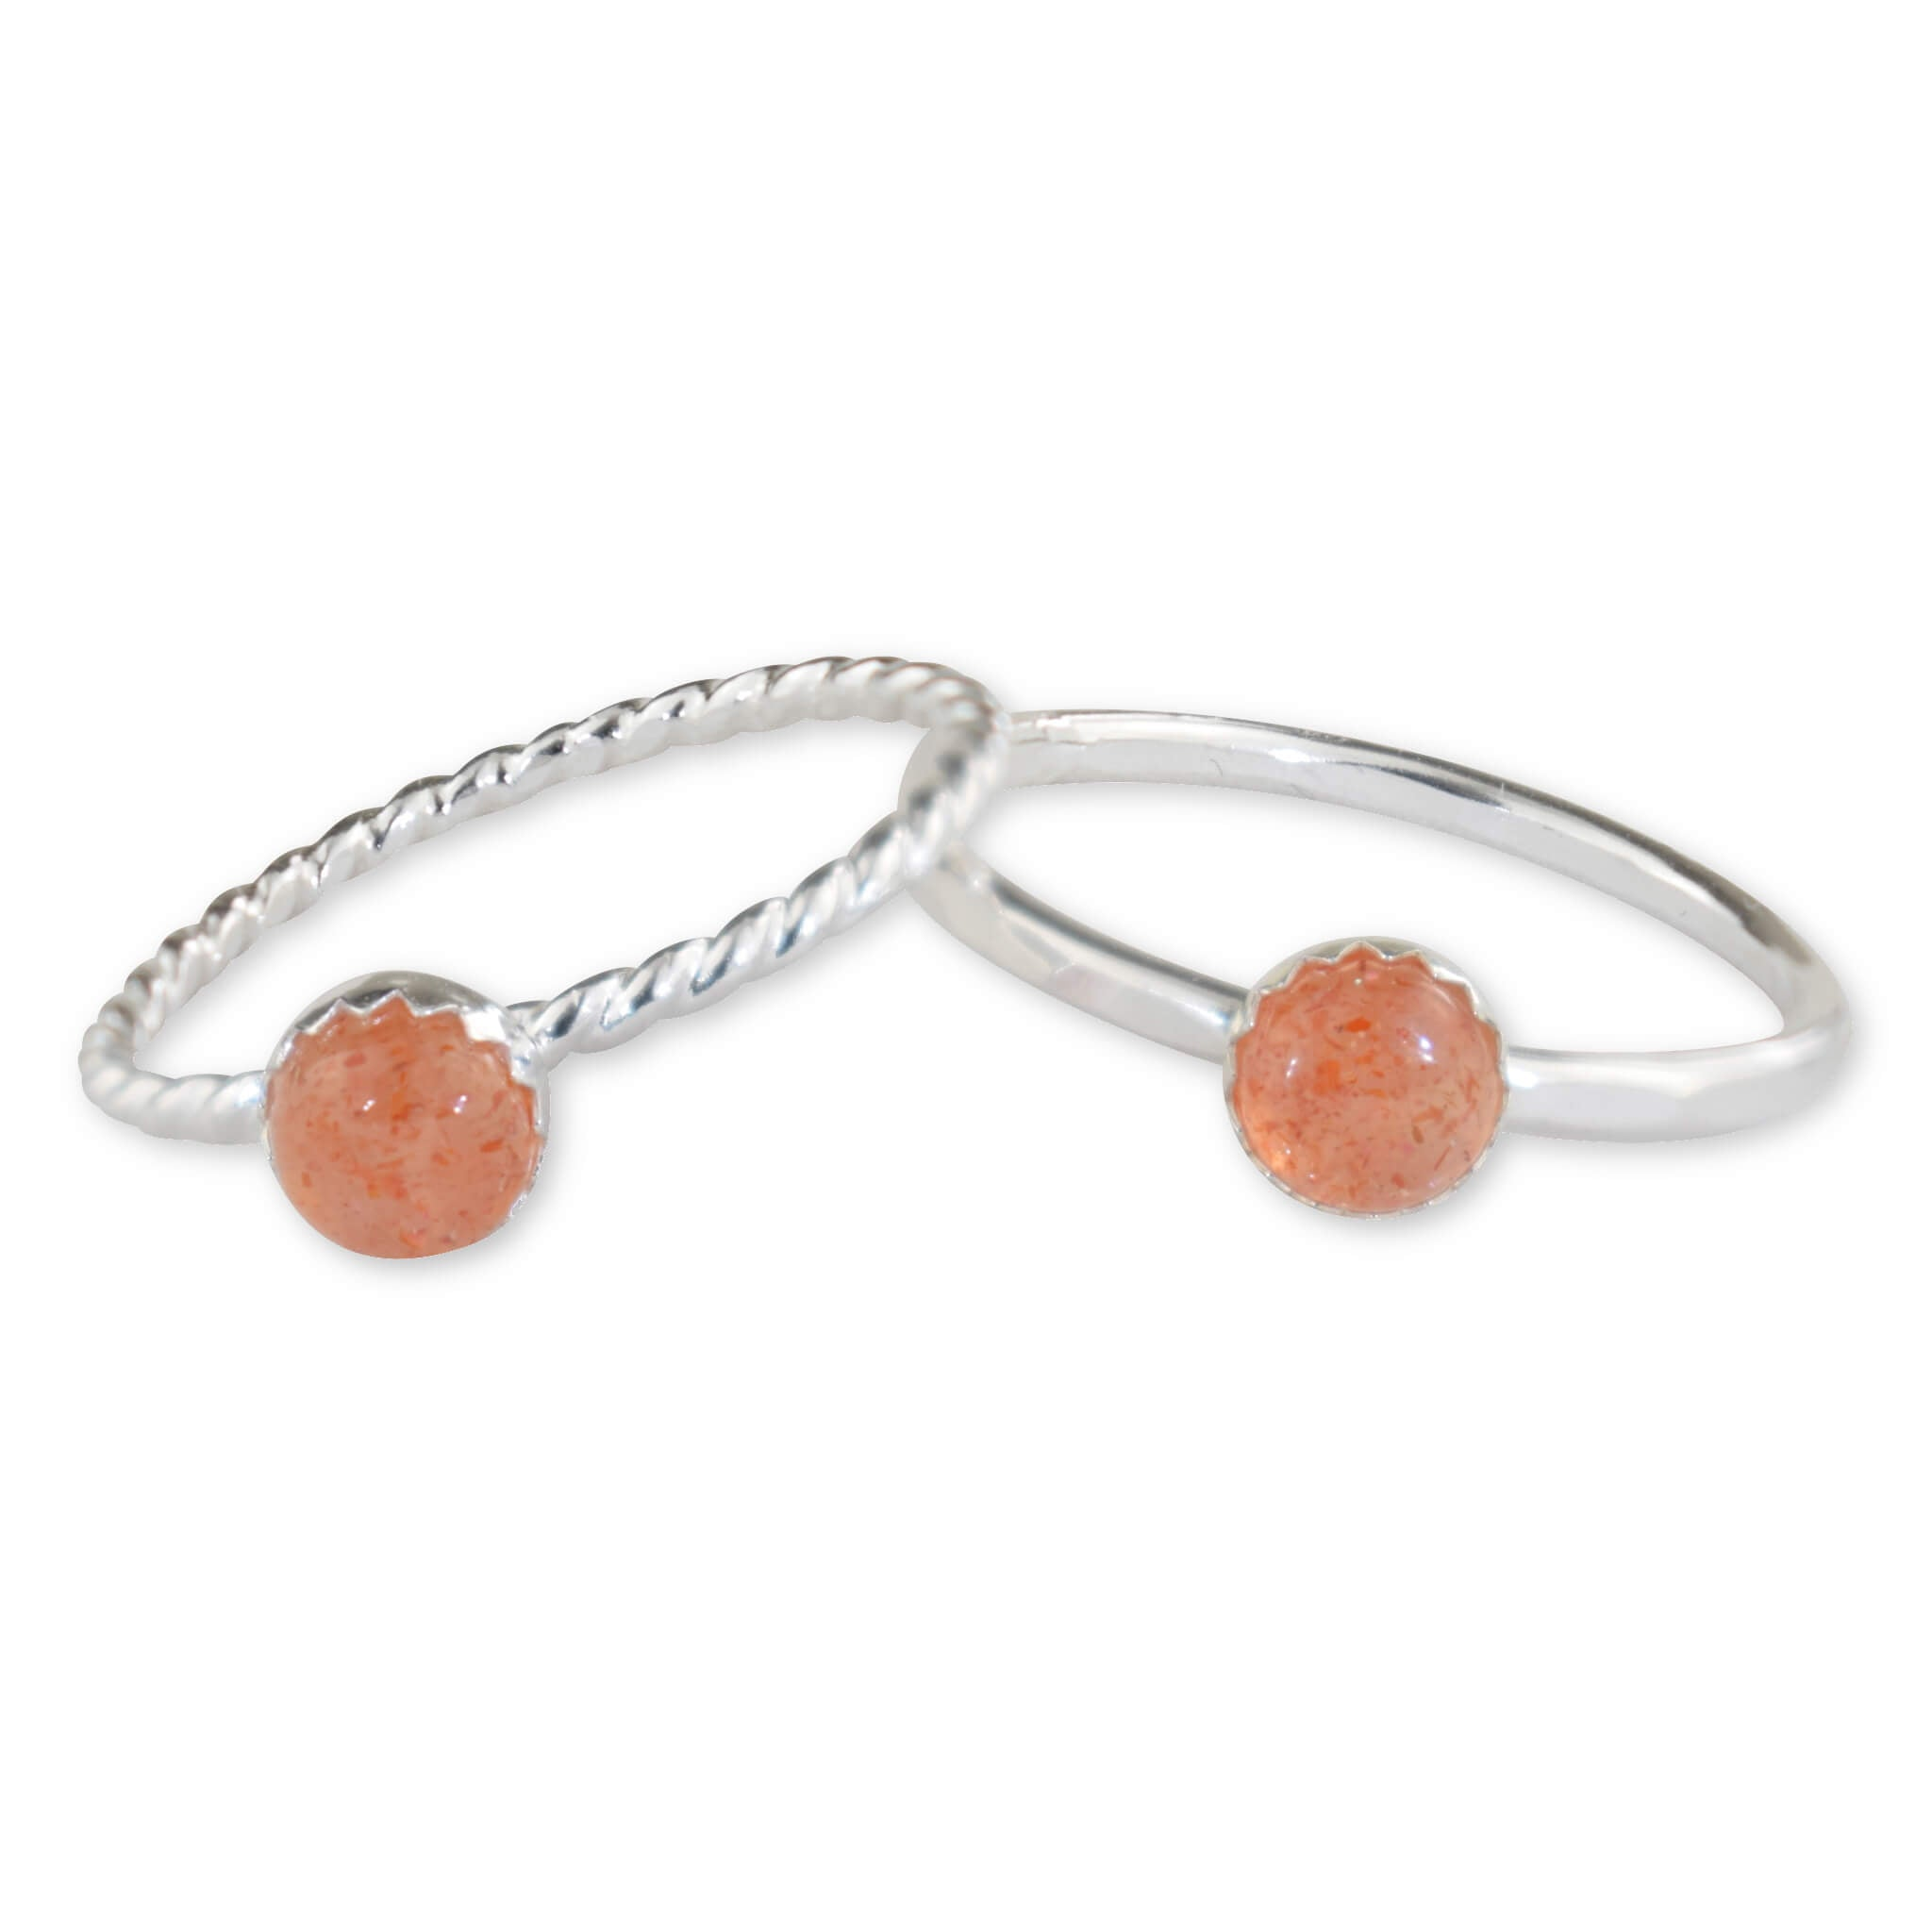 Sunstone Sterling Silver Ring - aymcollections